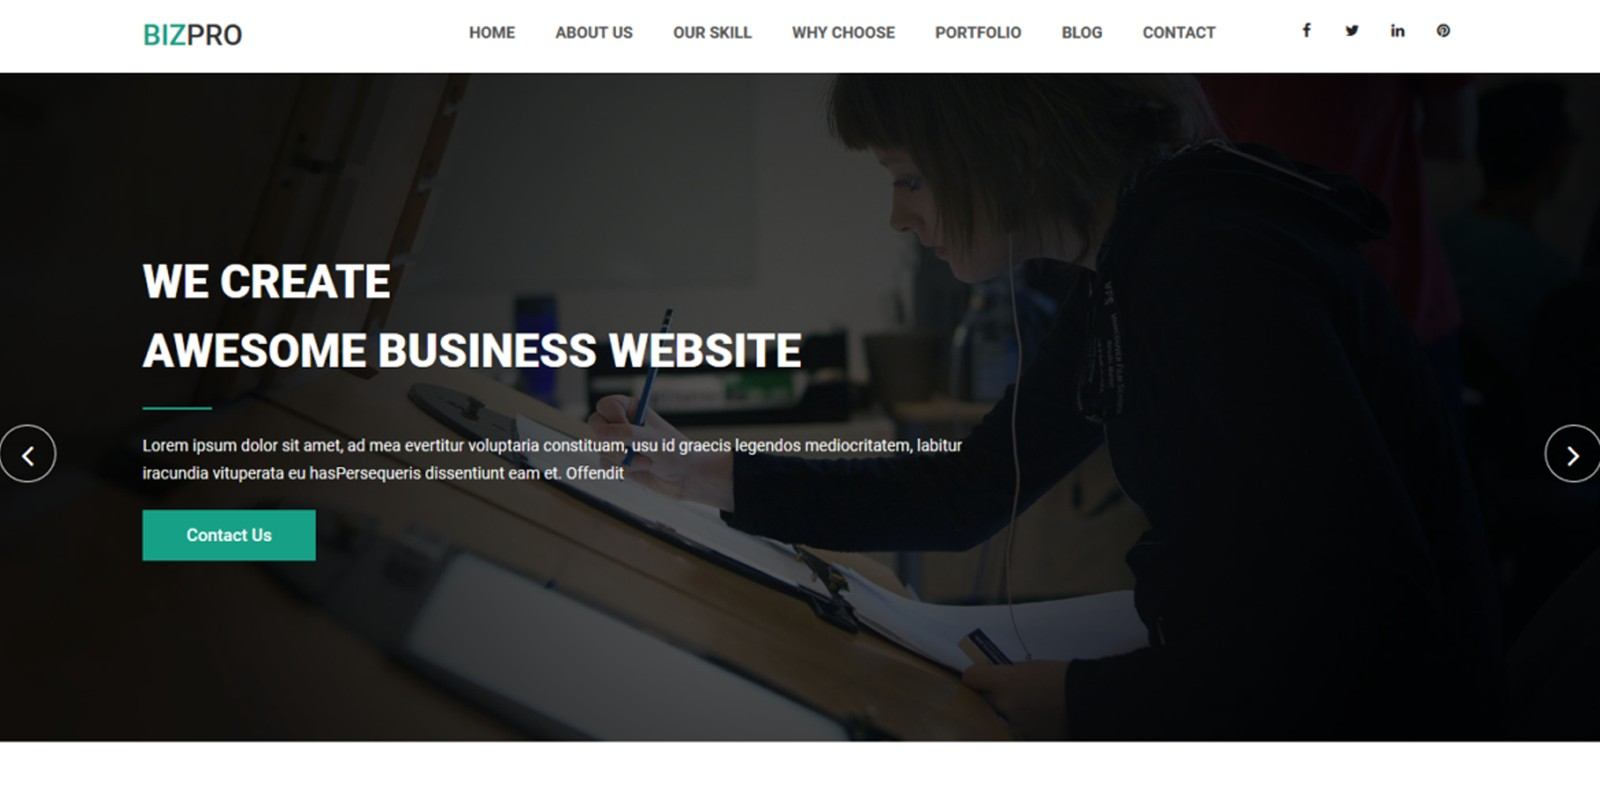 Bizpro - OnePage HTML Business Template - Business HTML Website ...